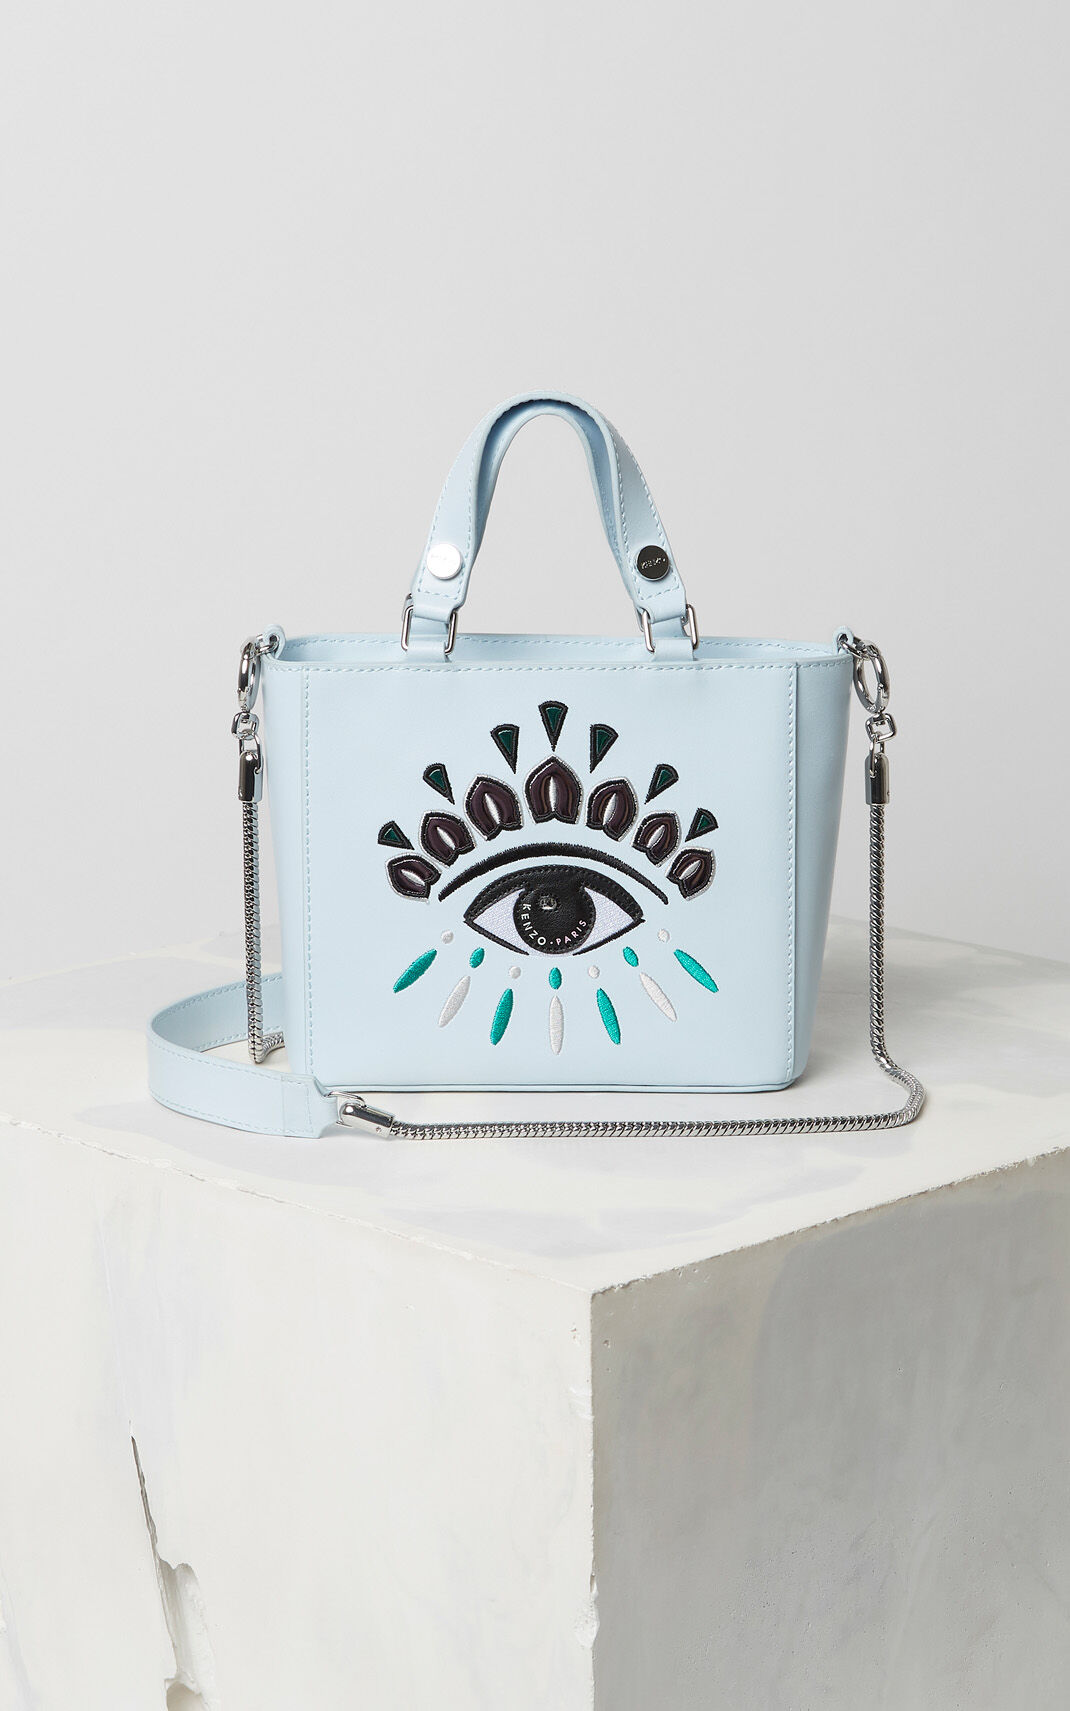 SKY BLUE Small Eye tote bag for unisex KENZO